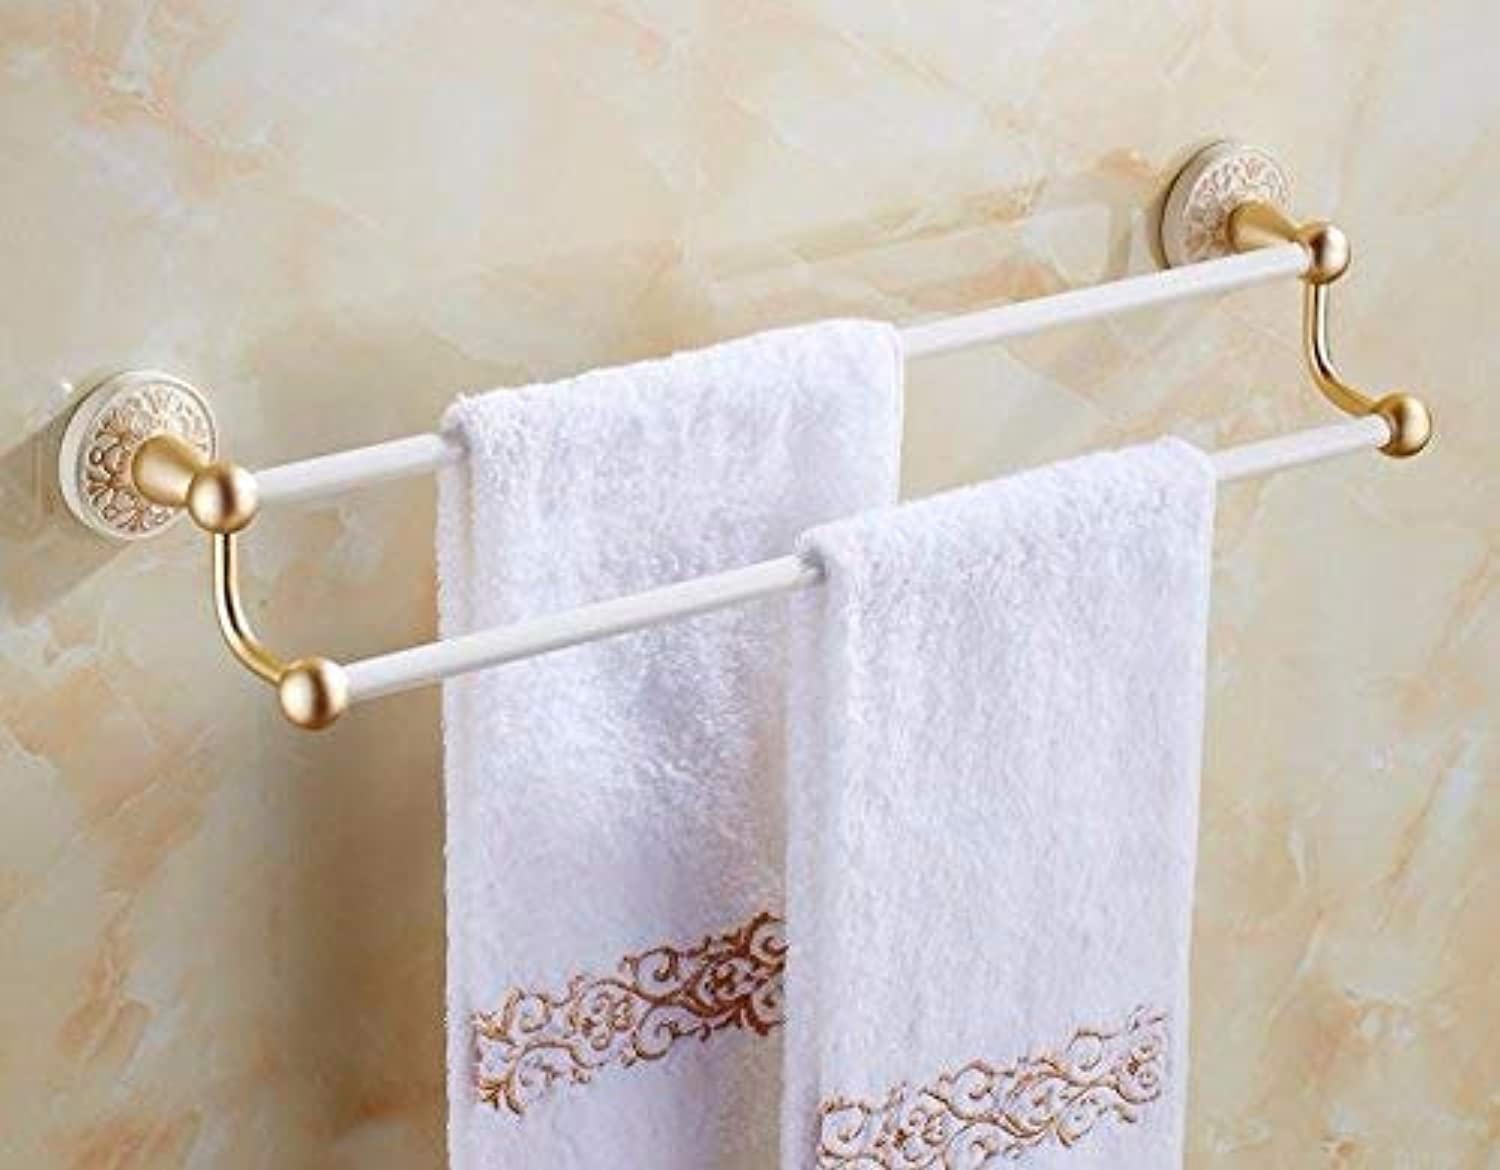 Towel Rack Home Waschbecken Waschtischarmatur Mischbatterie Waschtischarmatur Wasserhahn Moderne Einhebelmischer aus verchromtem Messing mit Einem Loch fllt aus dem Wasser